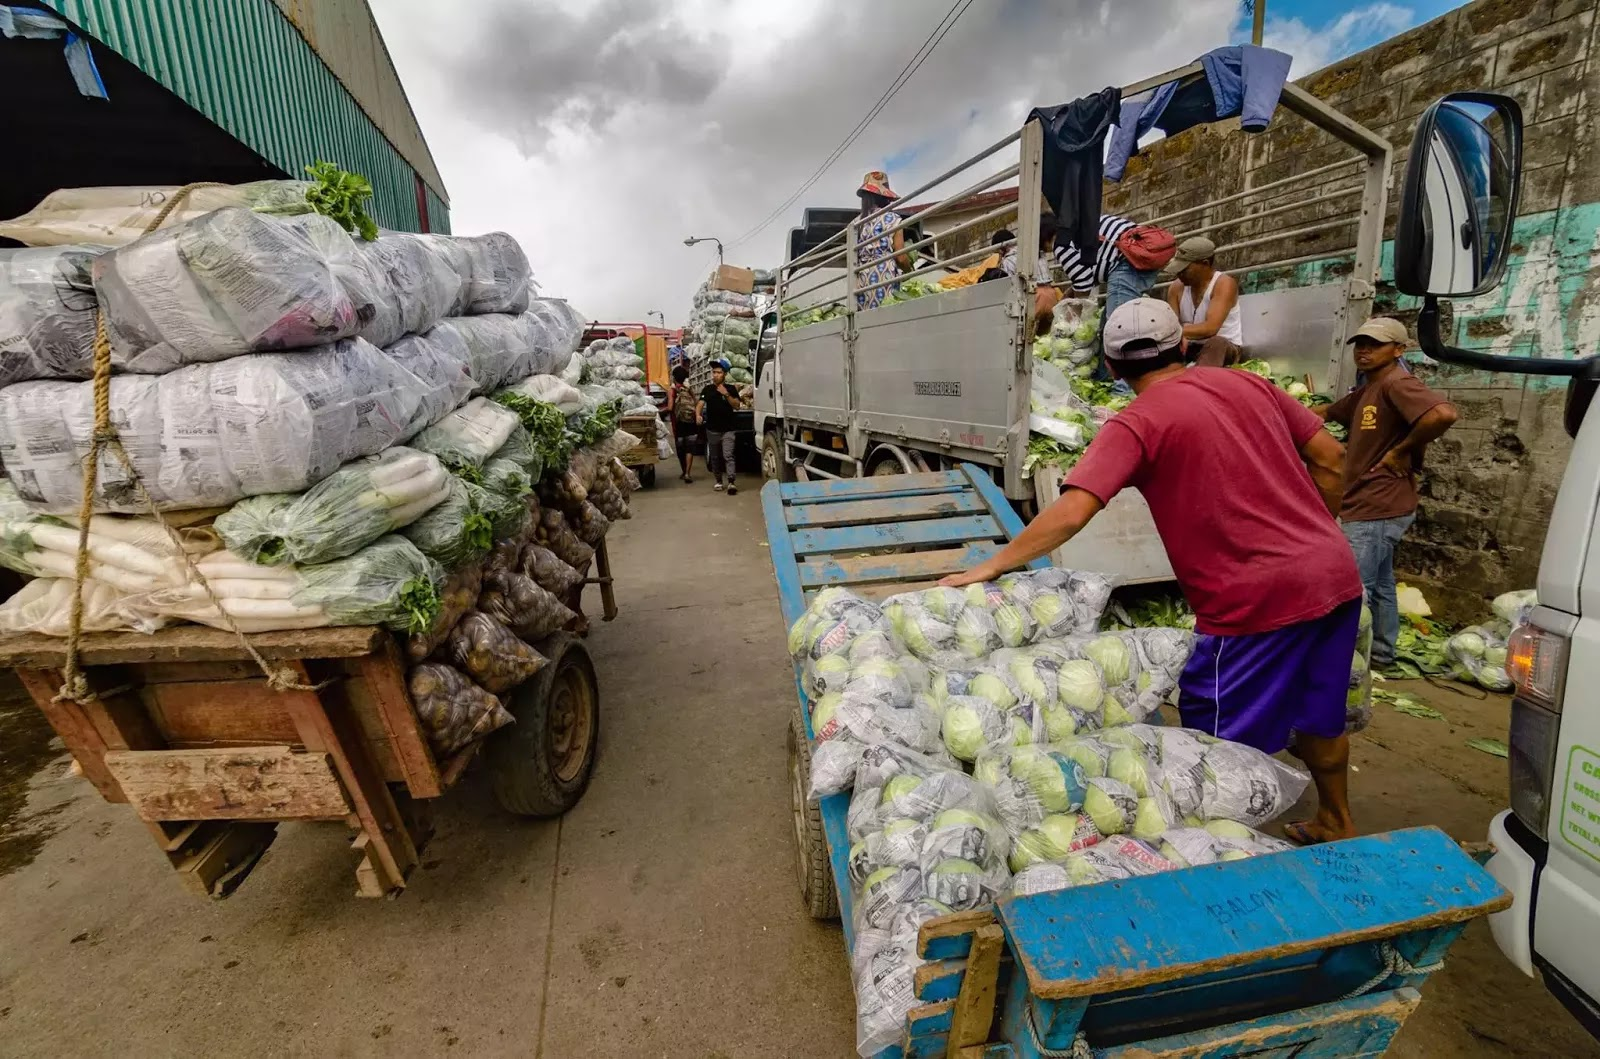 Fully Loaded Vegetable Produce Porter Carts Trading Post La Trinidad Benguet Cordillera Administrative Region Philippines